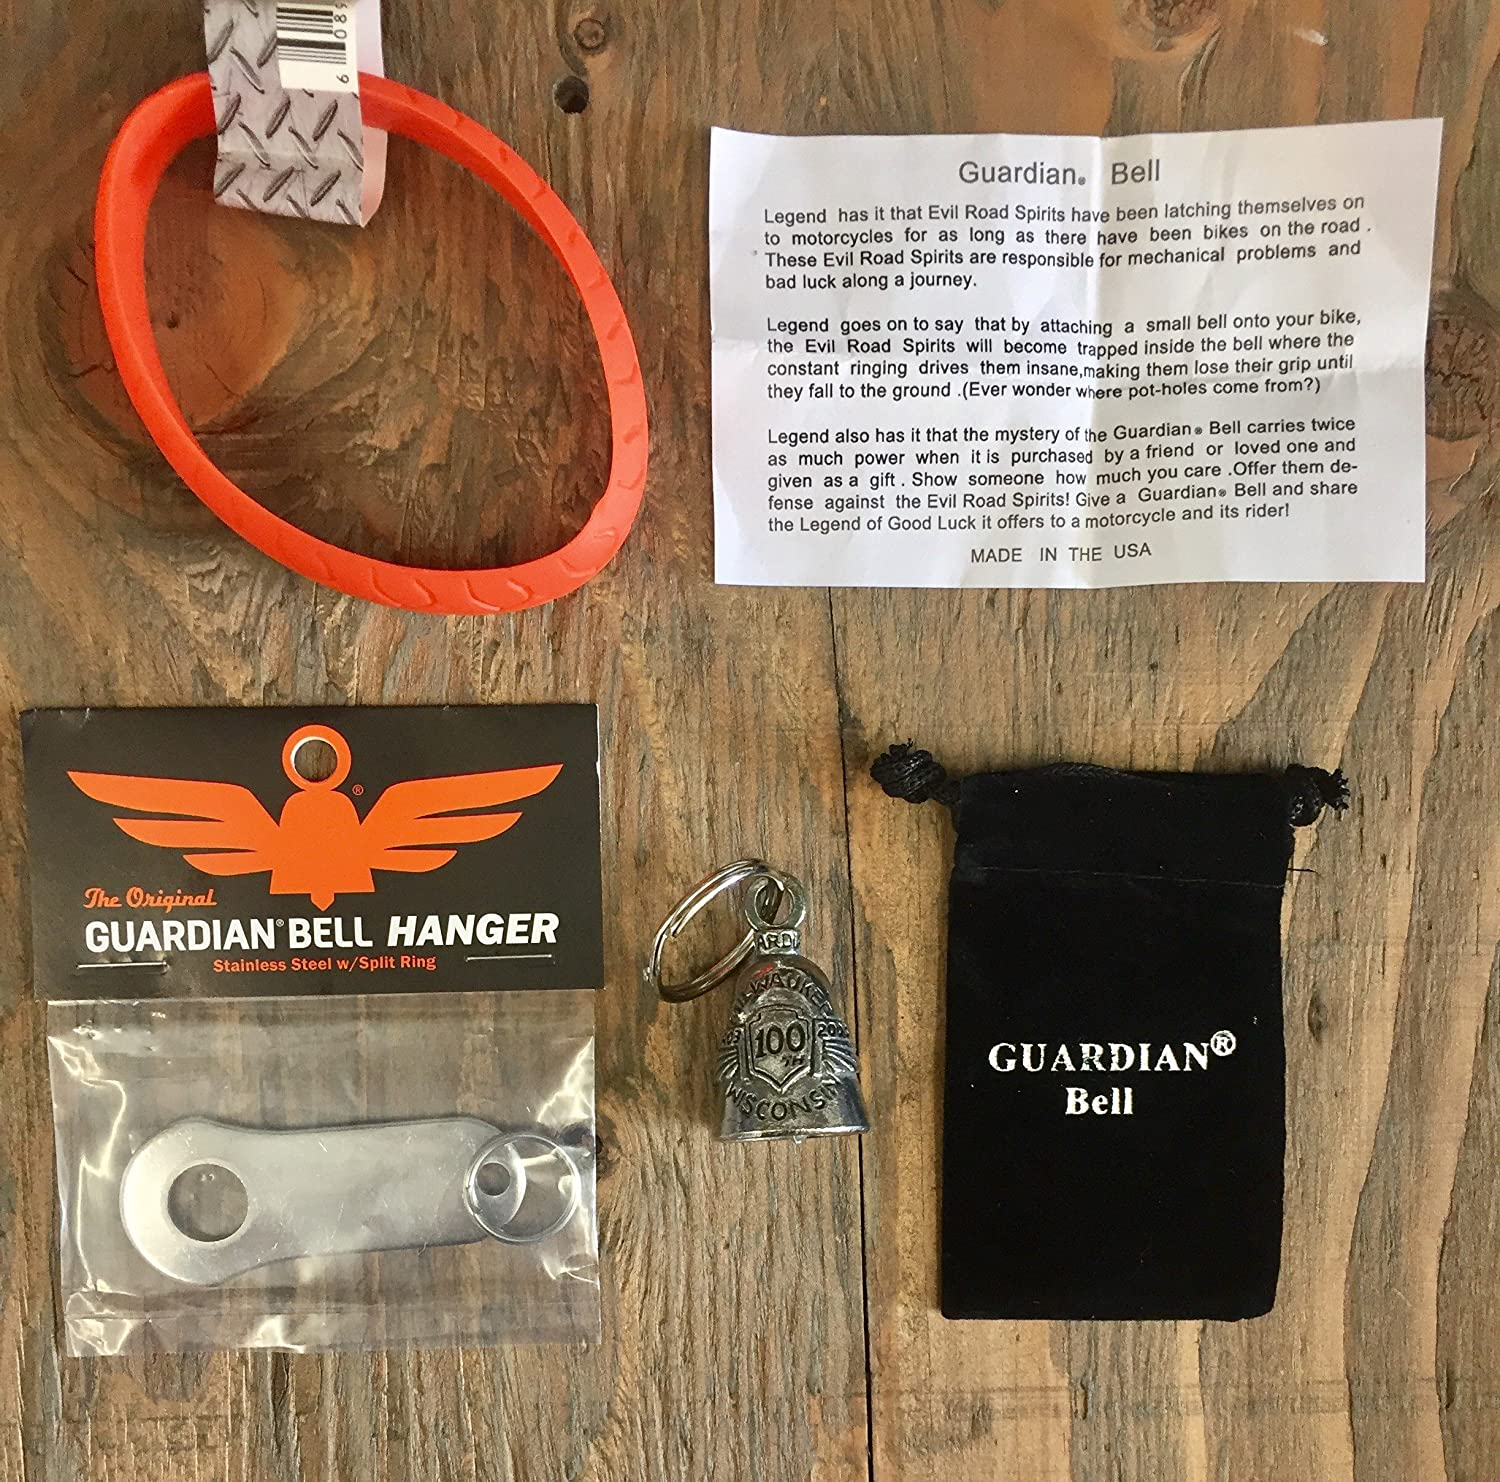 Guardian Bell ST CHRISTOPHER COMPLETE MOTORCYCLE KIT W//HANGER /& WRISTBAND